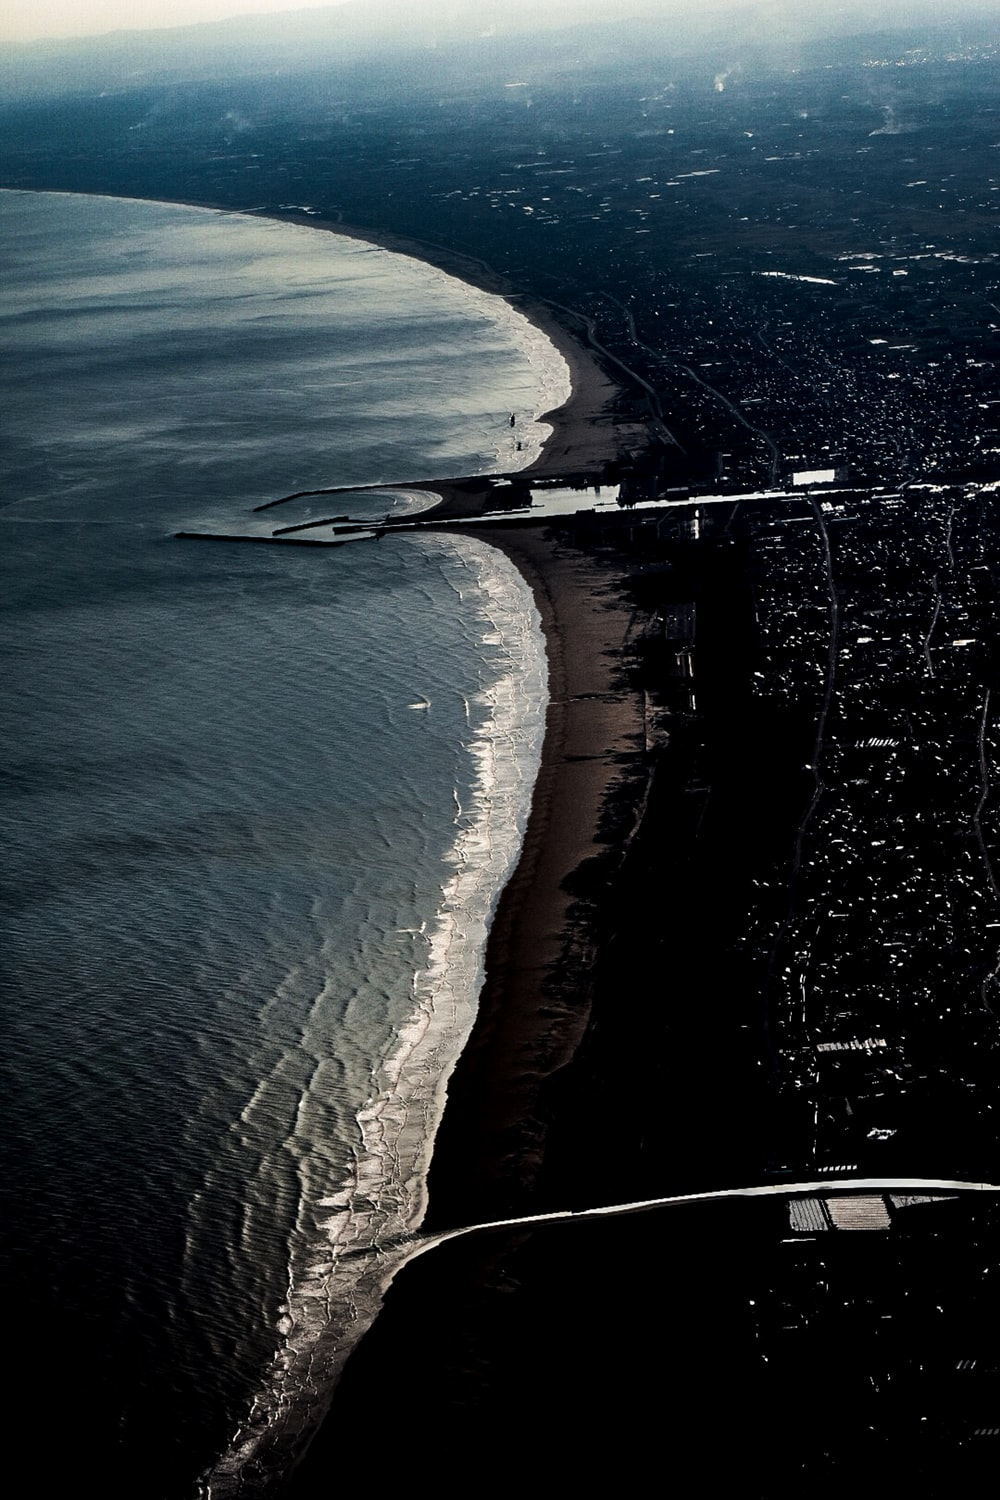 aerial photography of urban city near beach during daytime